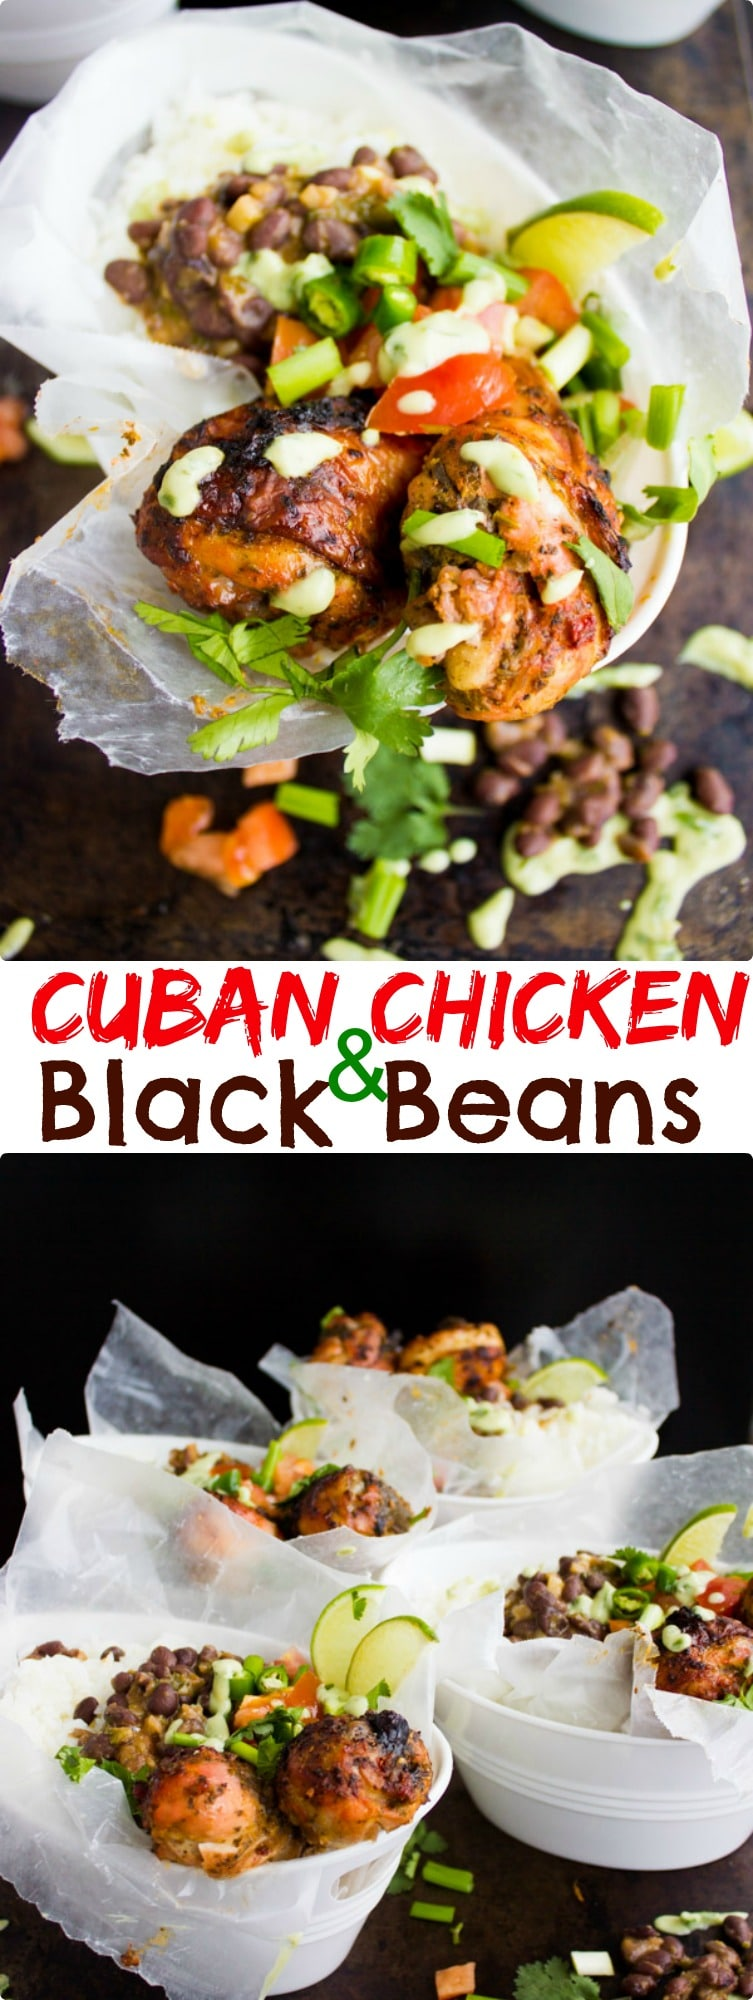 This Cuban Black Beans Chicken and Rice recipe will take you straight to the streets of Miami! An easy comfort food chicken dinner you will make over and over again. #cubanrecipes, #cubanblackbeans, #chickenandrice, #cubanstreetfood